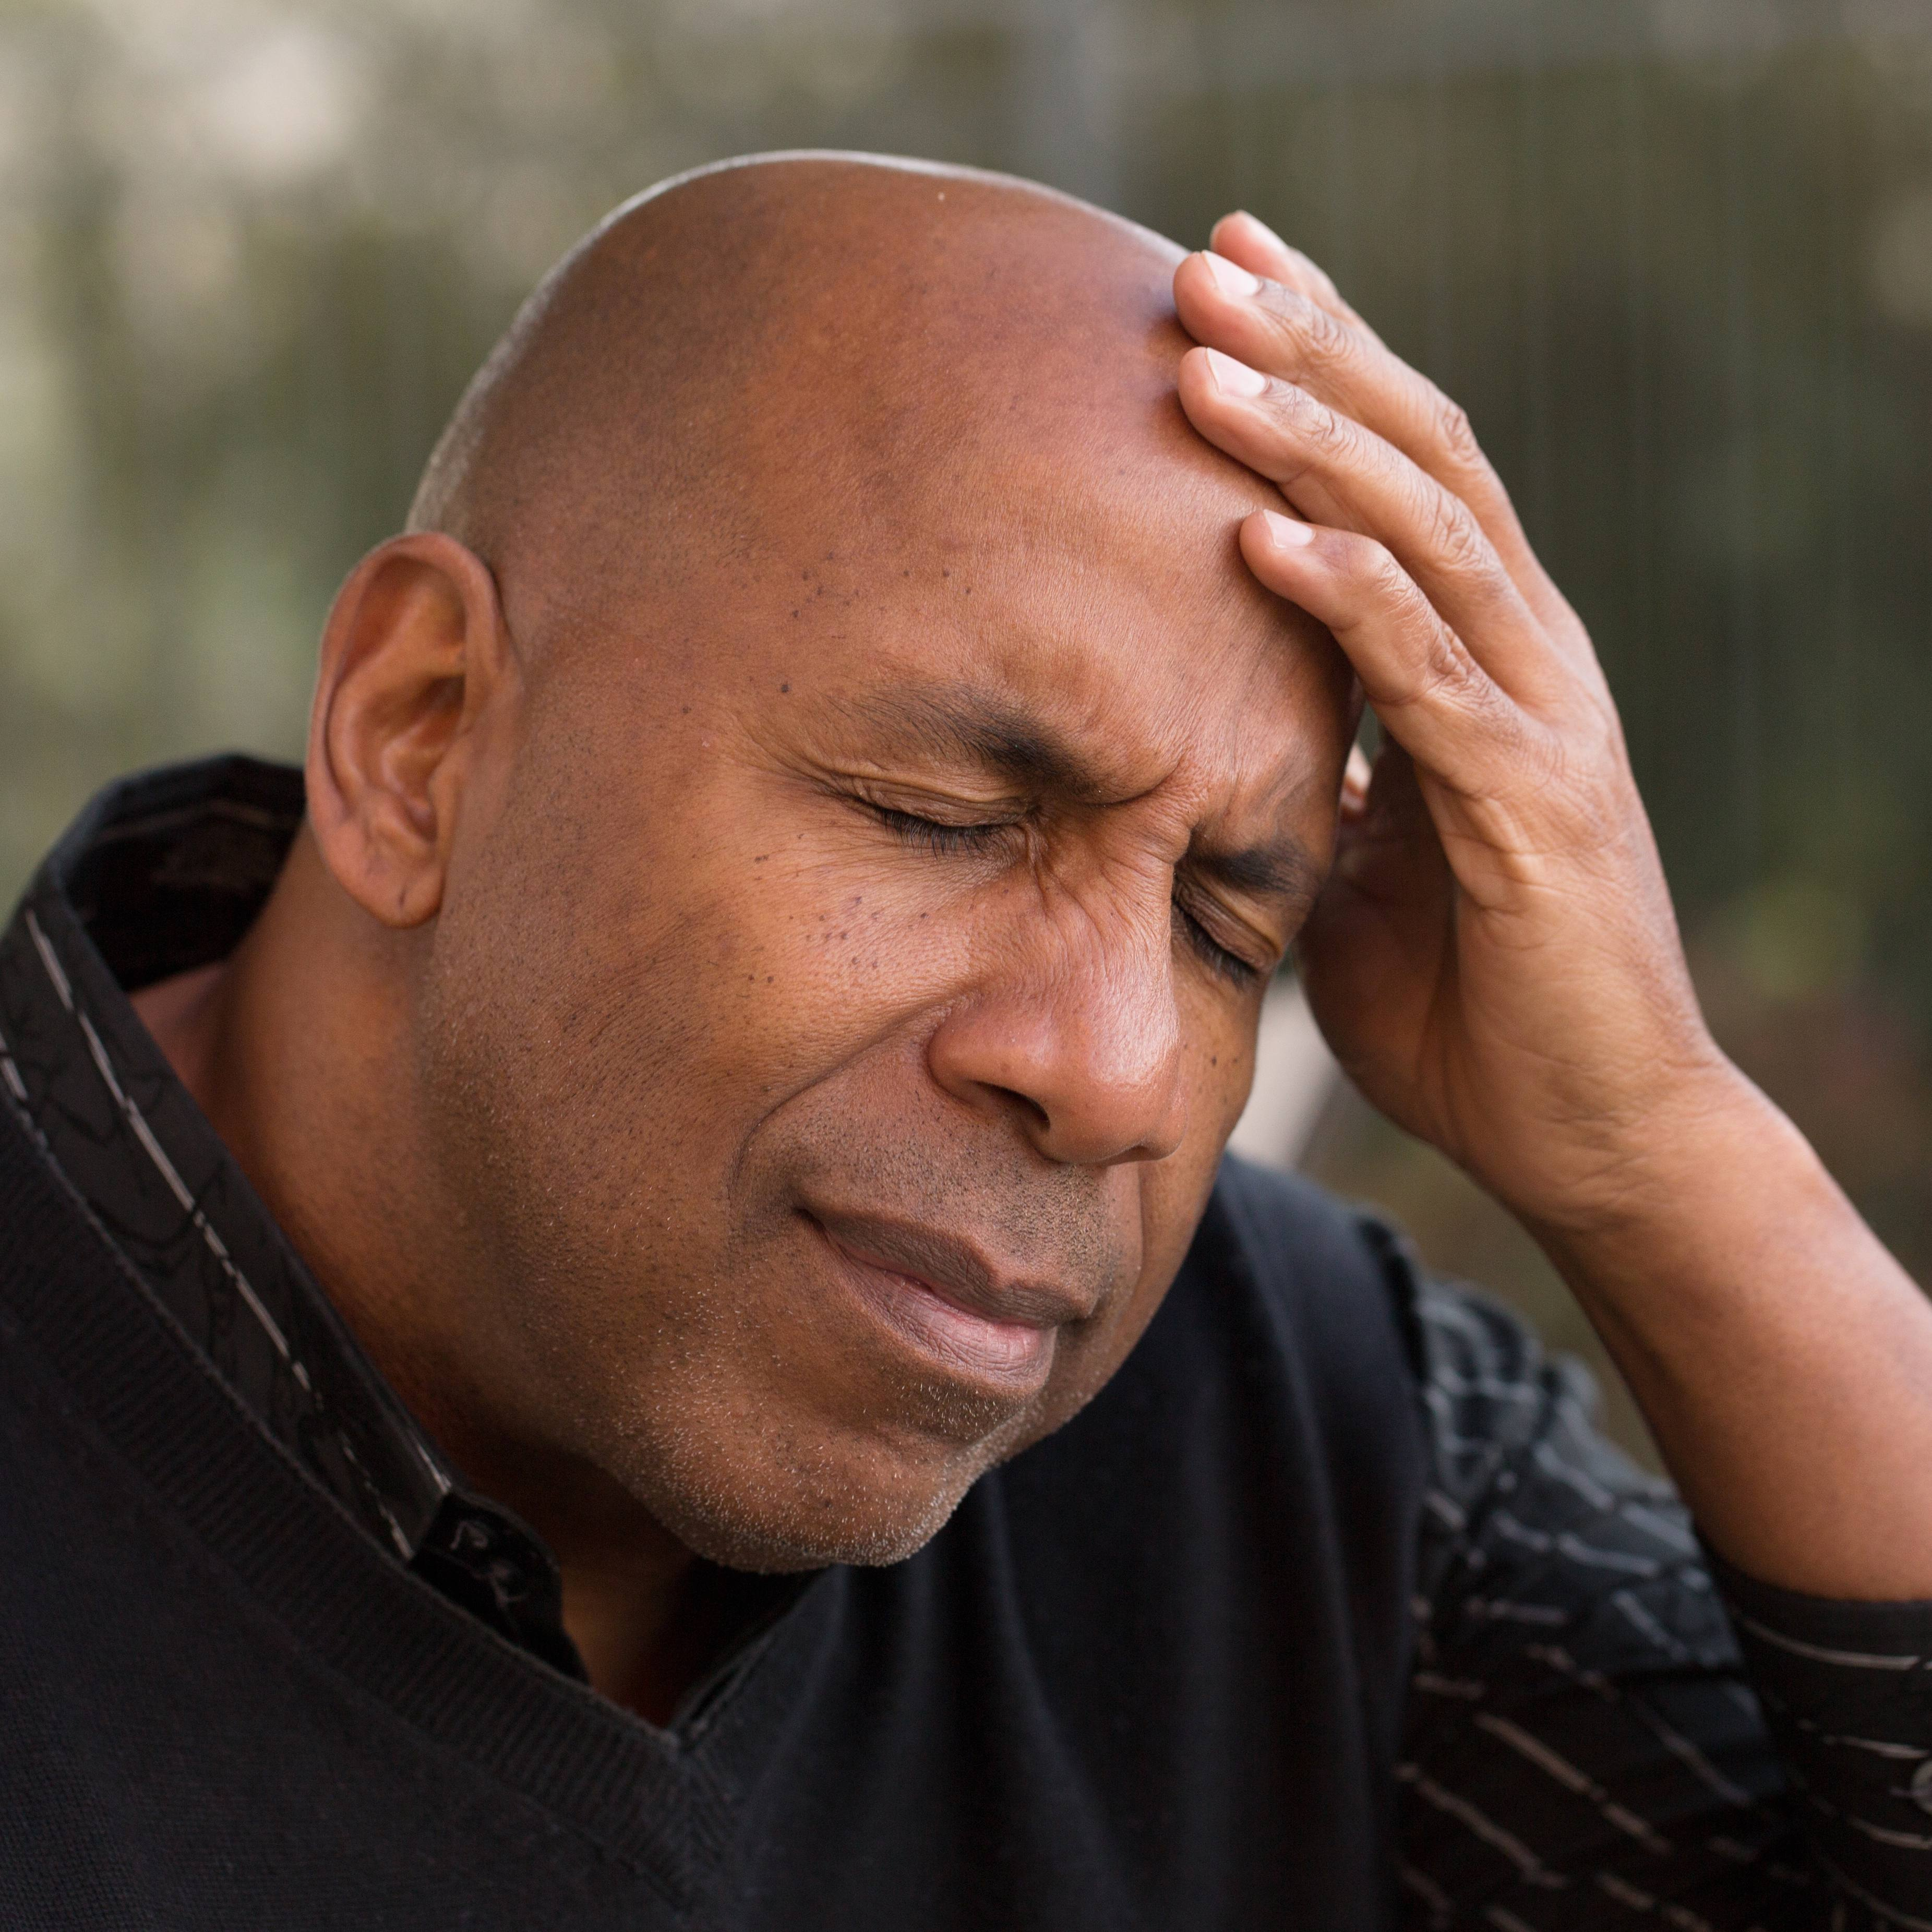 a middle-aged Black man sitting outside, with his eyes closed and resting his head in his hand as if he's in pain, with a tension headache